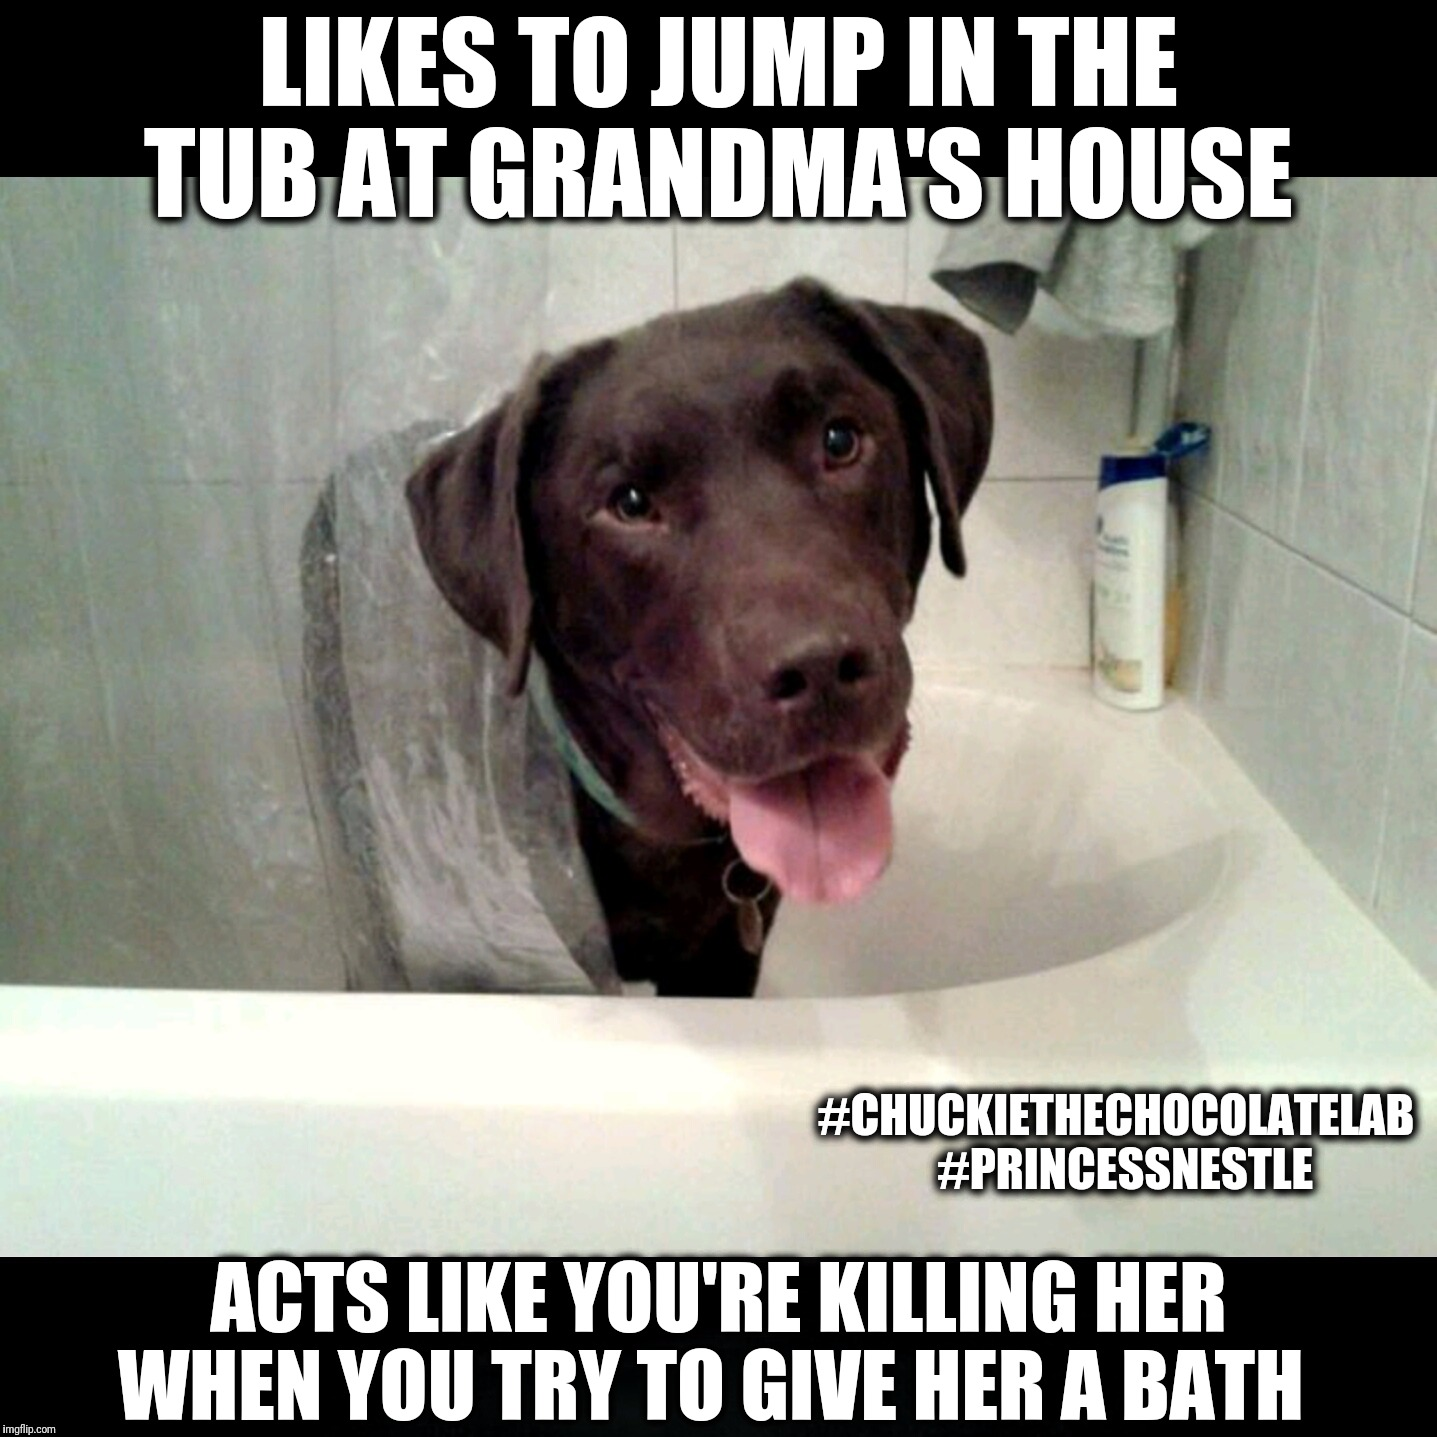 Like to jump into the tub at grandma's house  | LIKES TO JUMP IN THE TUB AT GRANDMA'S HOUSE ACTS LIKE YOU'RE KILLING HER WHEN YOU TRY TO GIVE HER A BATH #CHUCKIETHECHOCOLATELAB  #PRINCESSN | image tagged in chuckie the chocolate lab,princess nestl,funny,dogs,memes,labrador | made w/ Imgflip meme maker